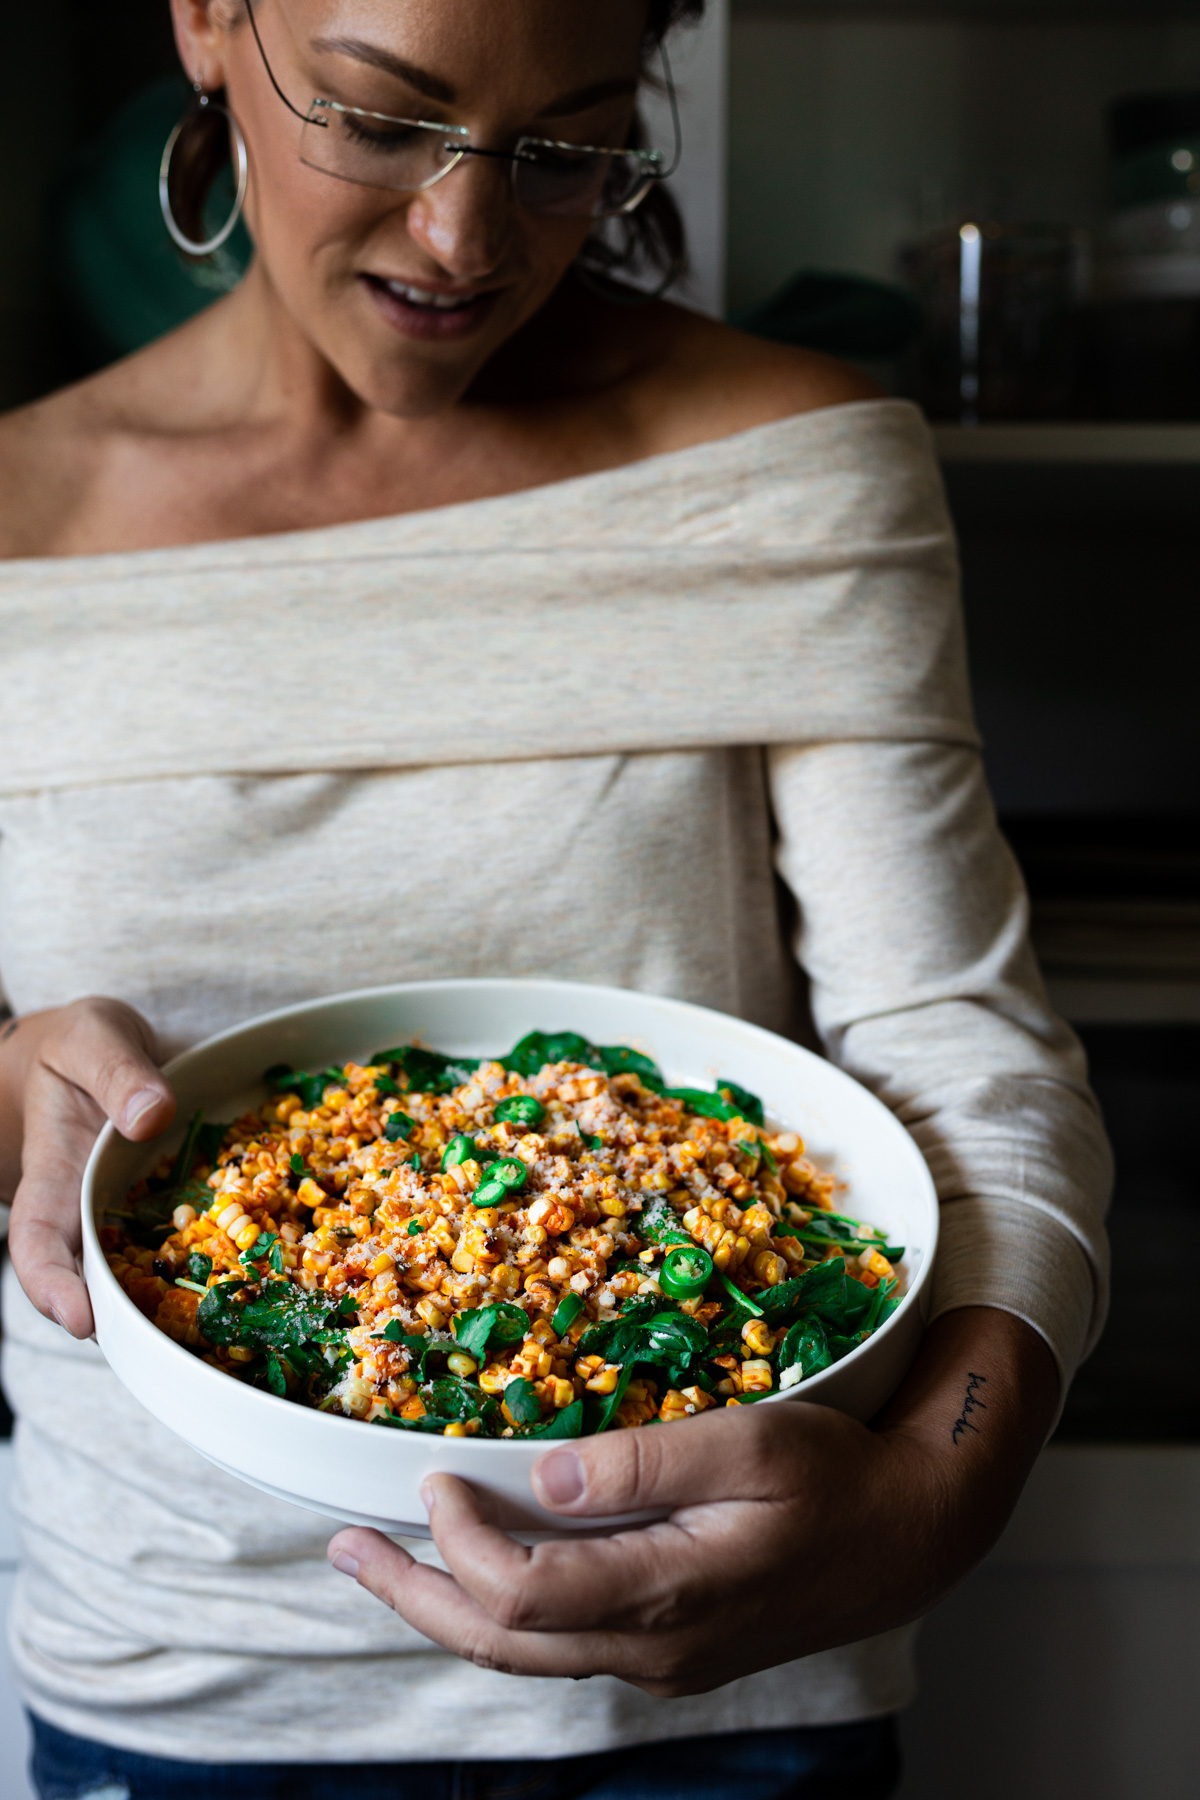 Karly Gomez holding a bowl of corn and arugula salad with roasted red pepper sauce